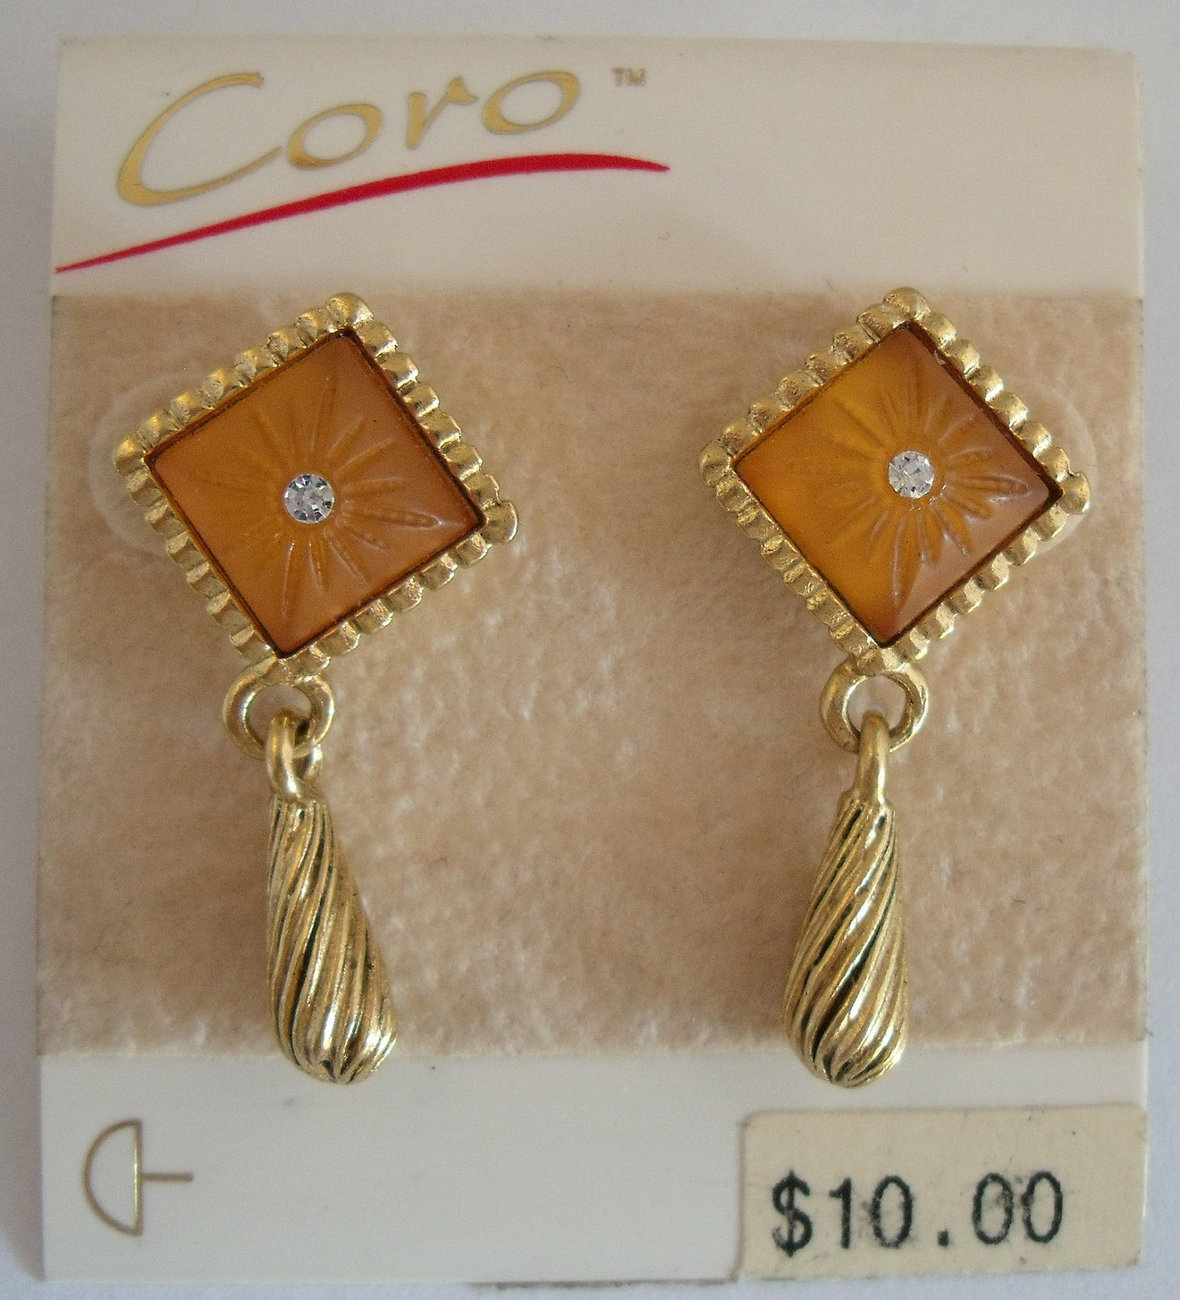 Eighties Coro  cushion  cab earrings in green and gold for pierced ears